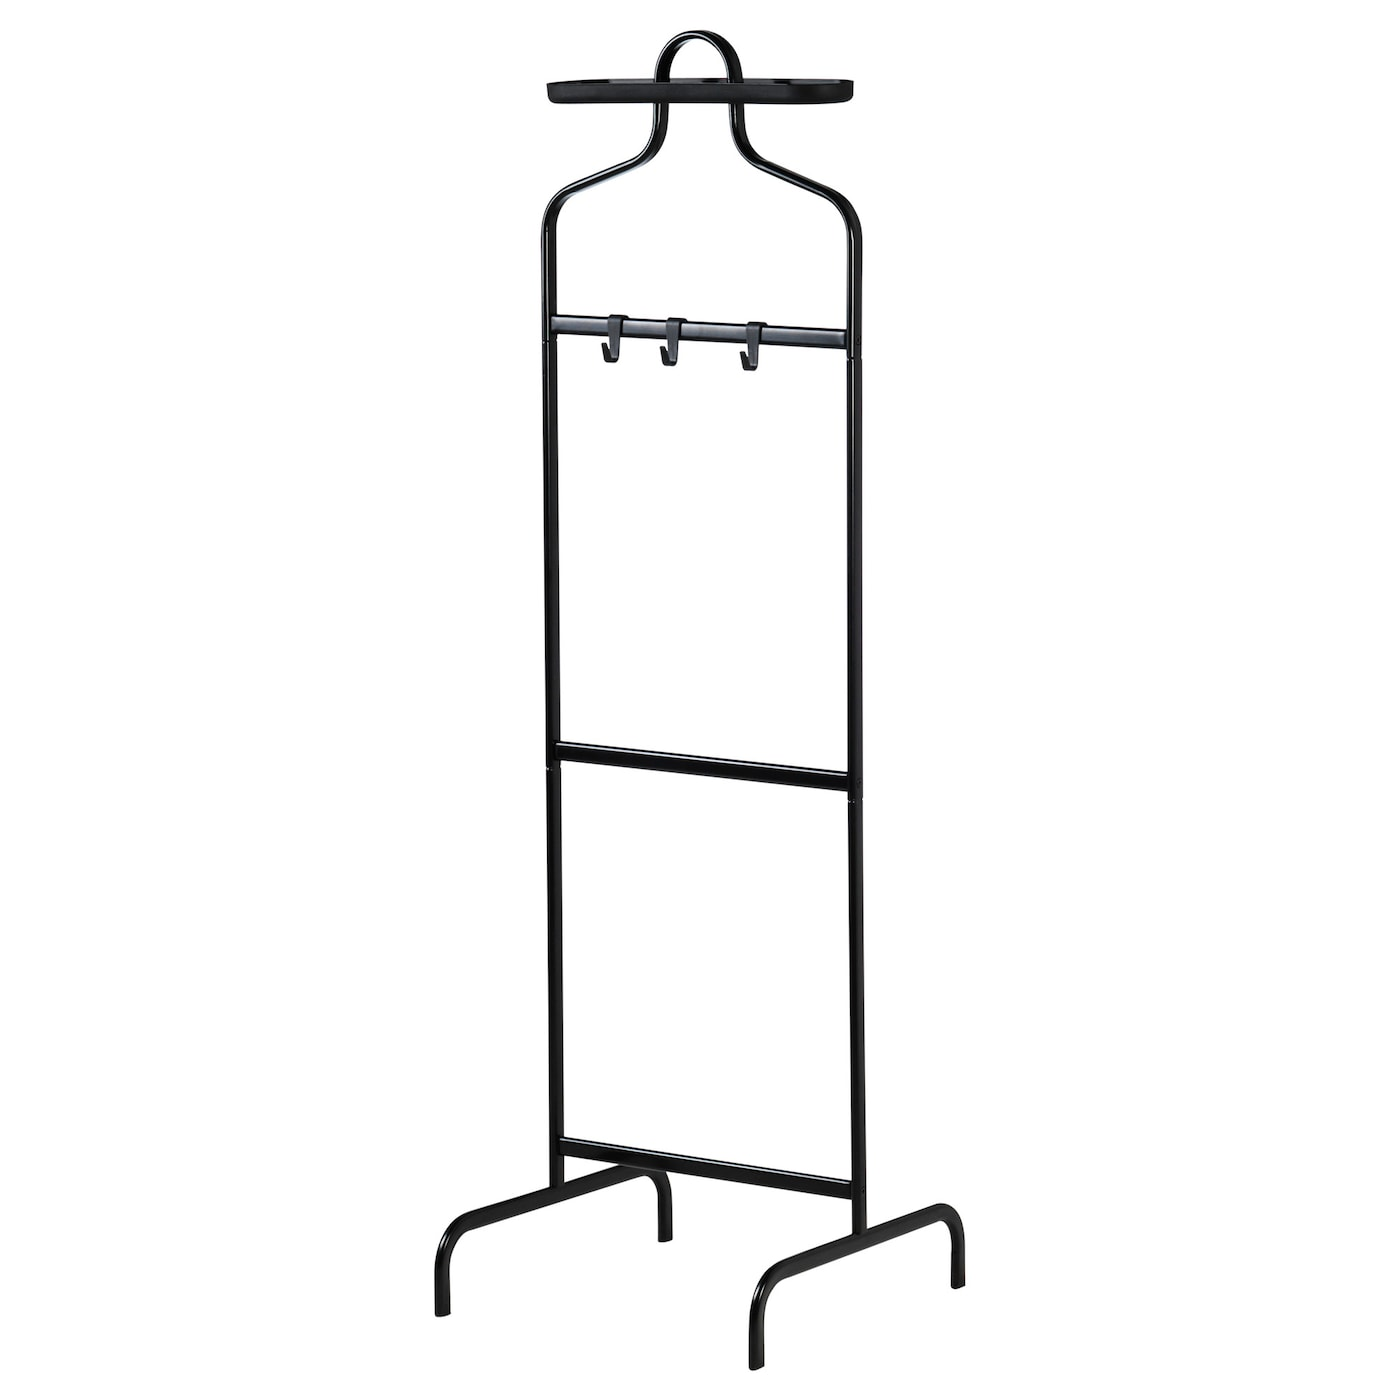 ikea mulig valet stand can be mounted at two different heights